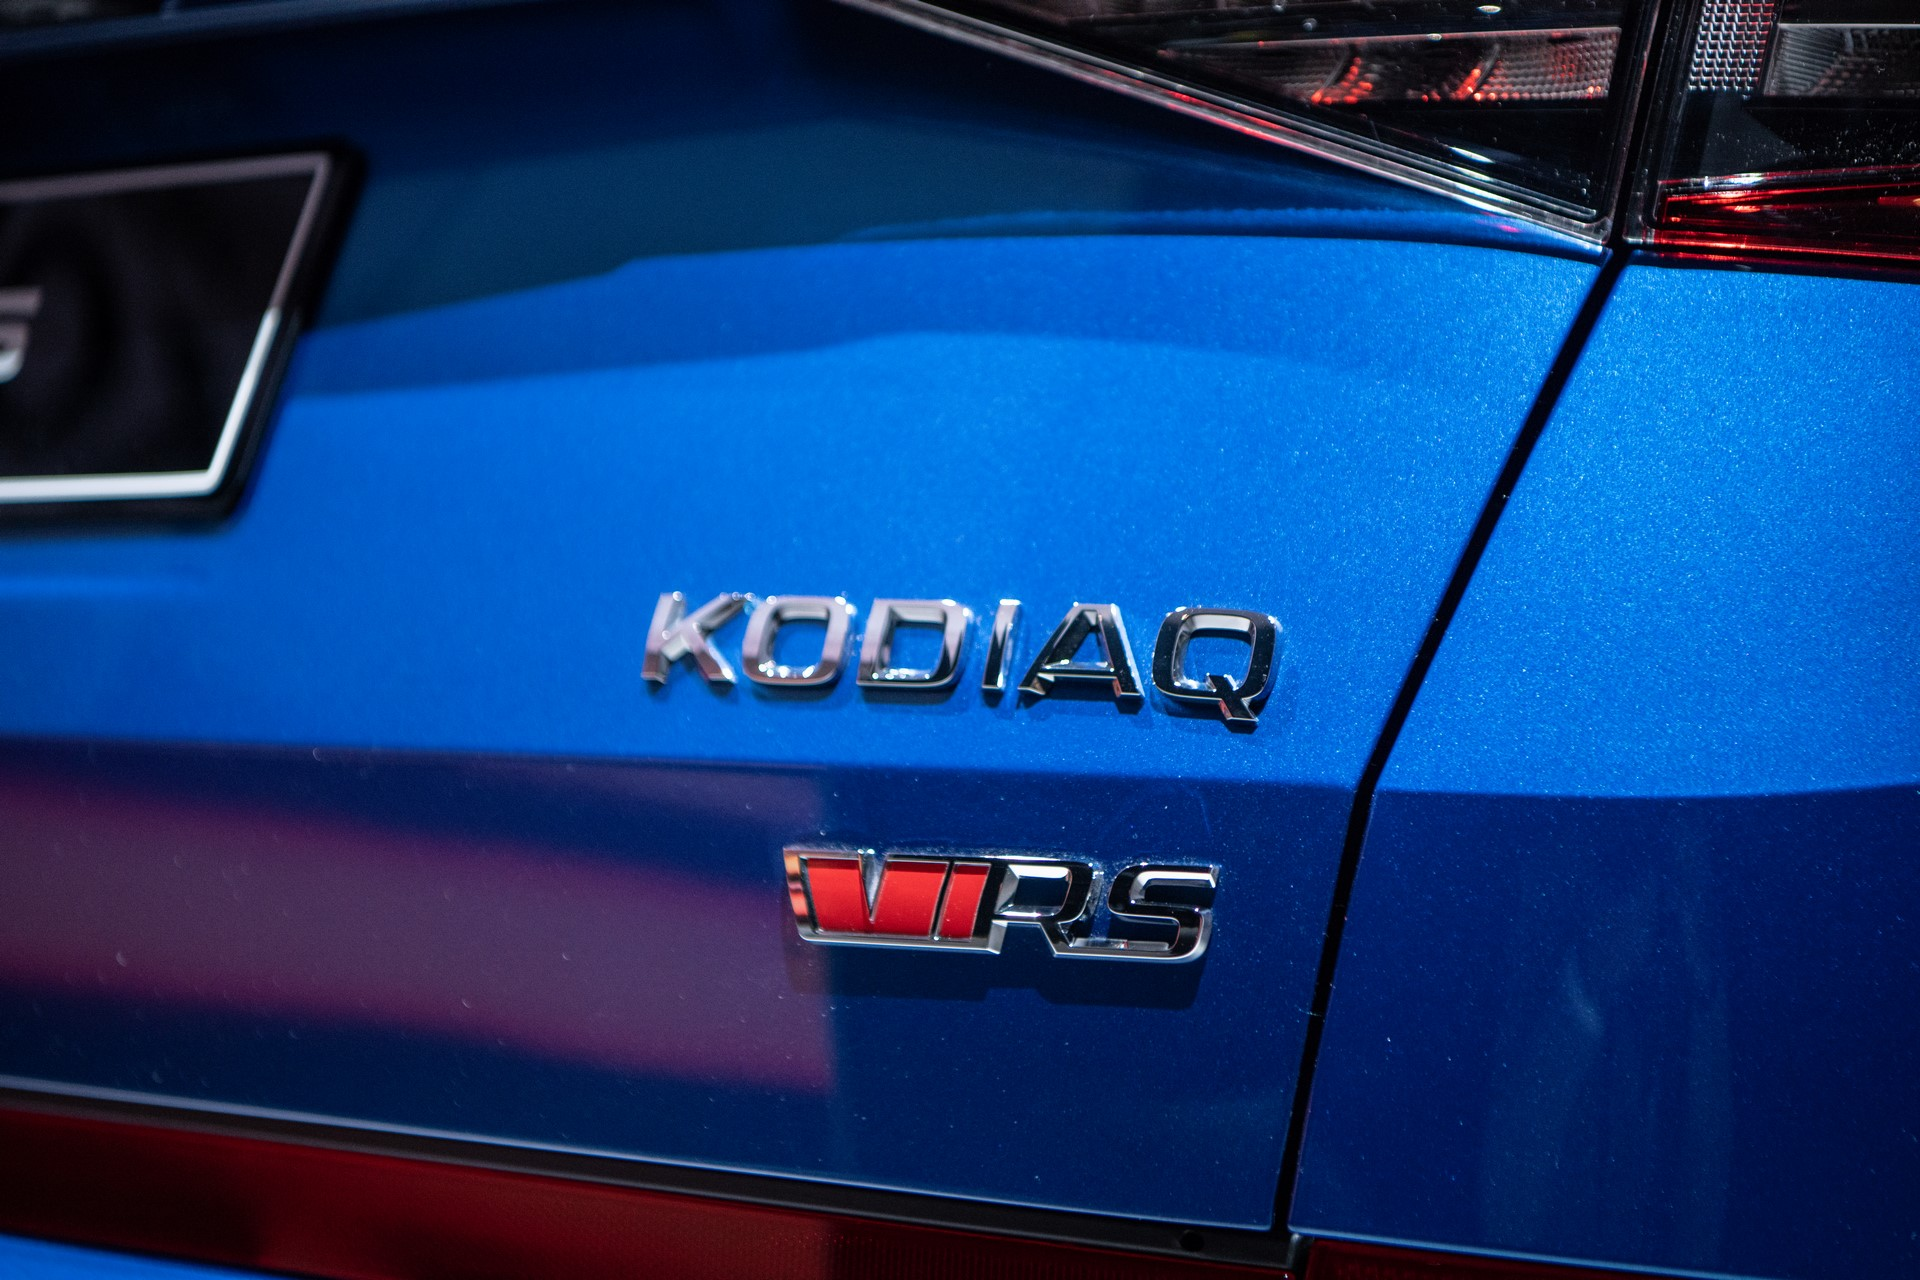 kodiaq-rs-badge-paris-skoda